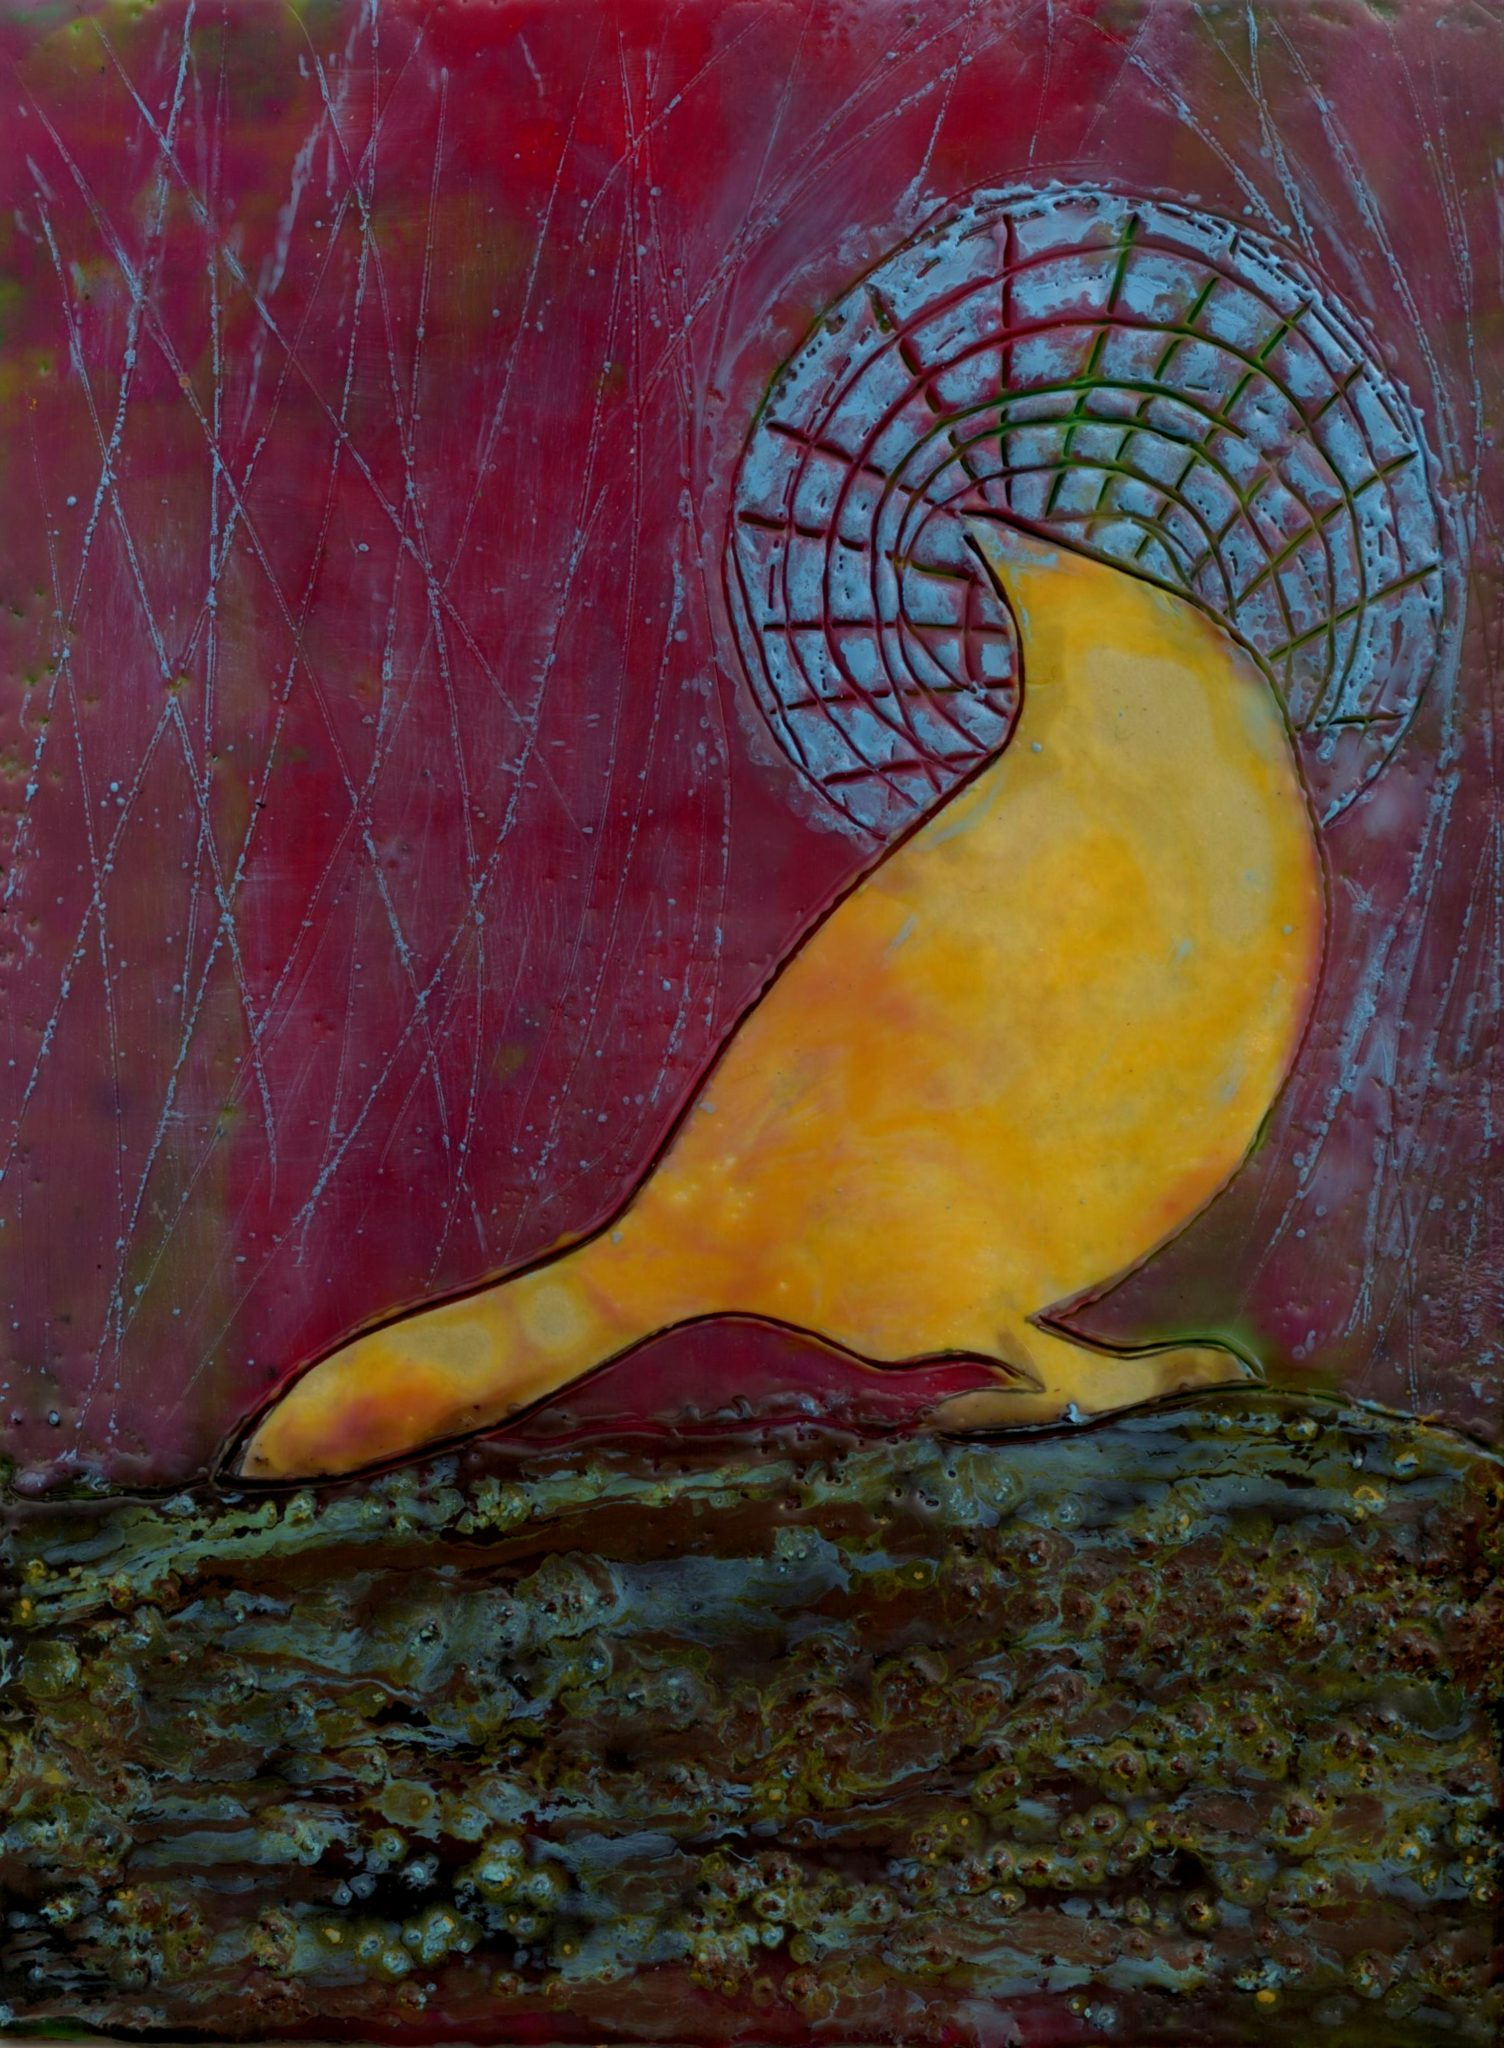 Birdset, Moonrise, mixed media encaustic by Courtney Putnam